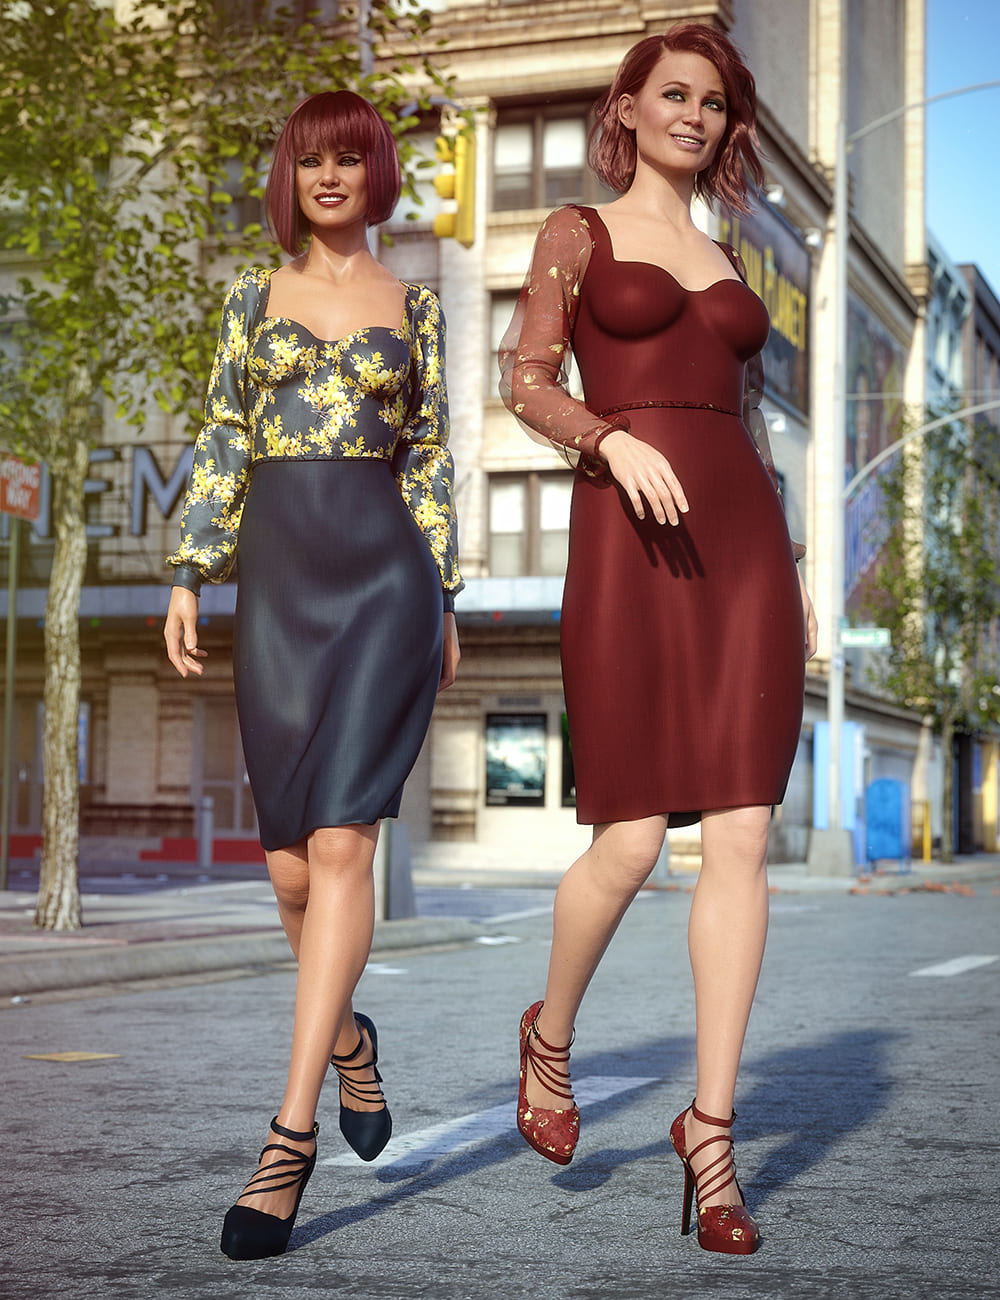 dForce New York Style Dress Outfit Textures_DAZ3D下载站